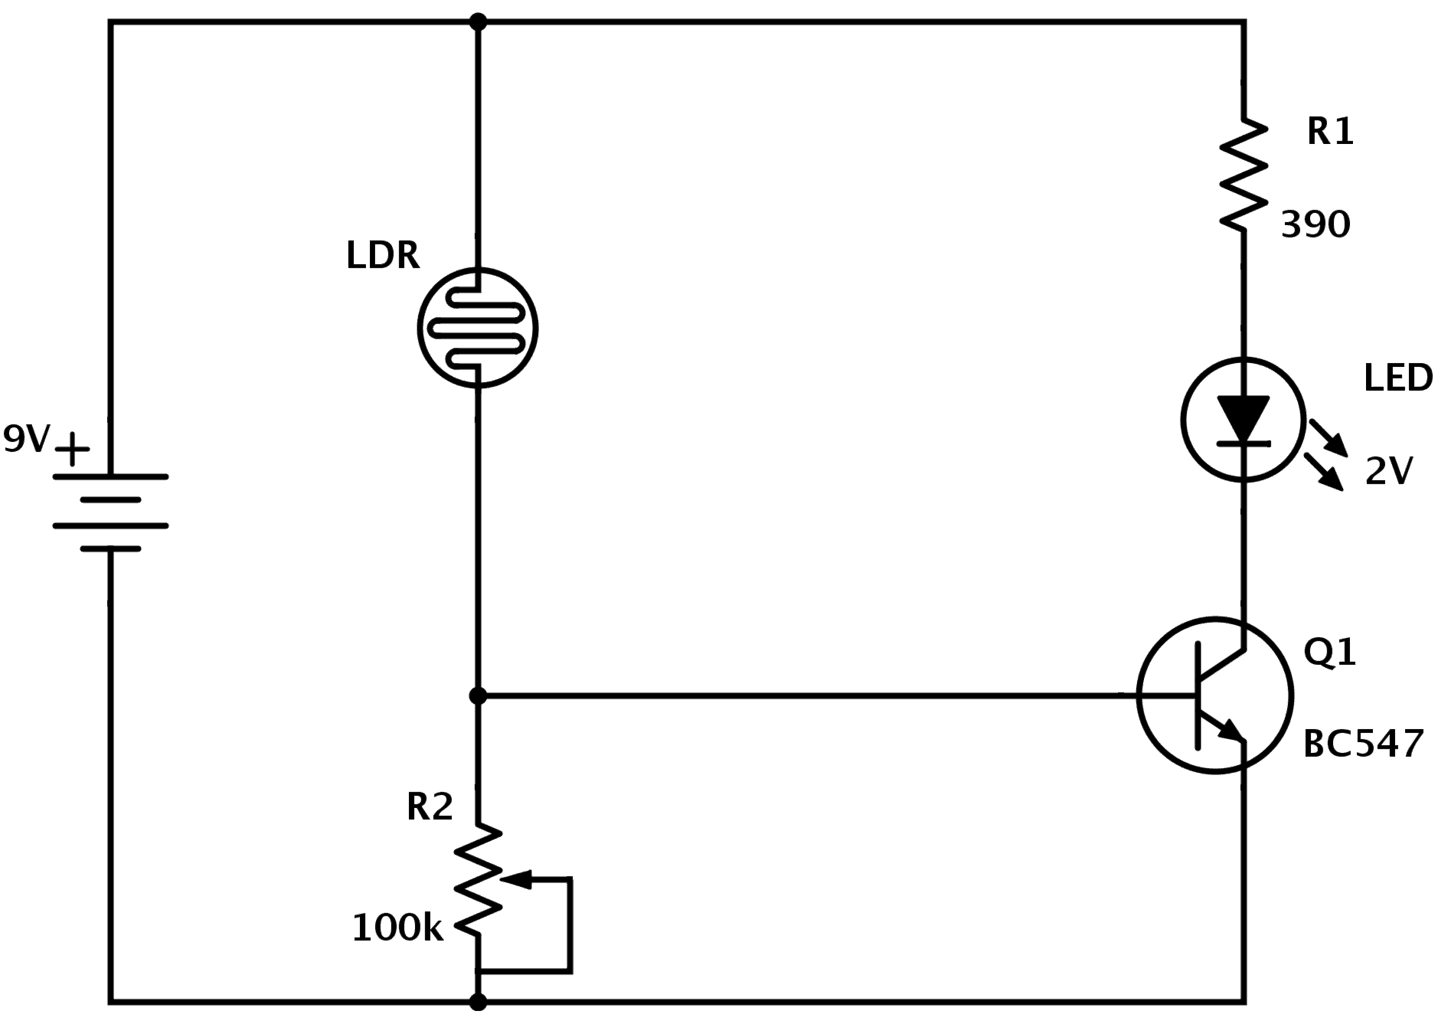 circuit diagram how to read and understand any schematic rh build electronic circuits com read schematic diagram read electric circuit diagram